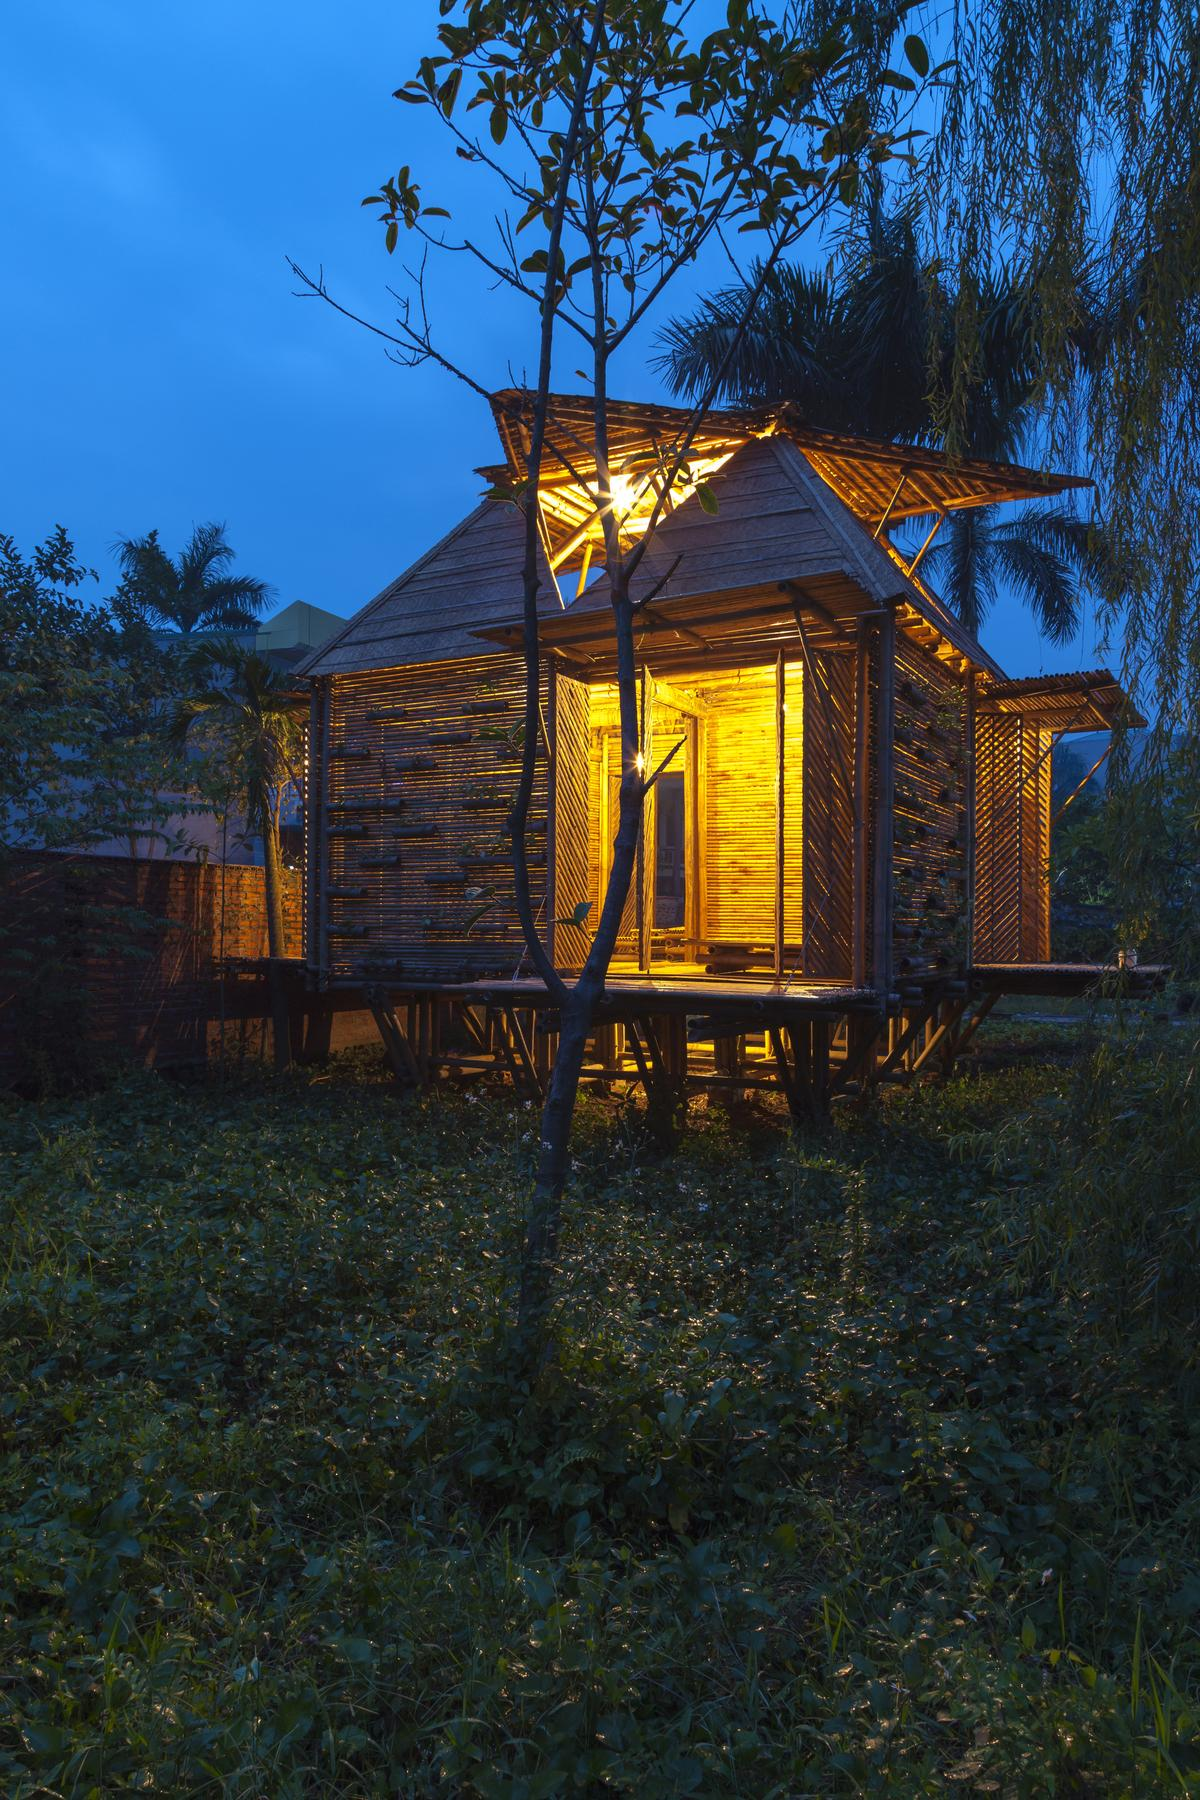 The Blooming Bamboo home, by Vietnamese architectural firm H&P Architects (Photo: Doan Thanh Ha)